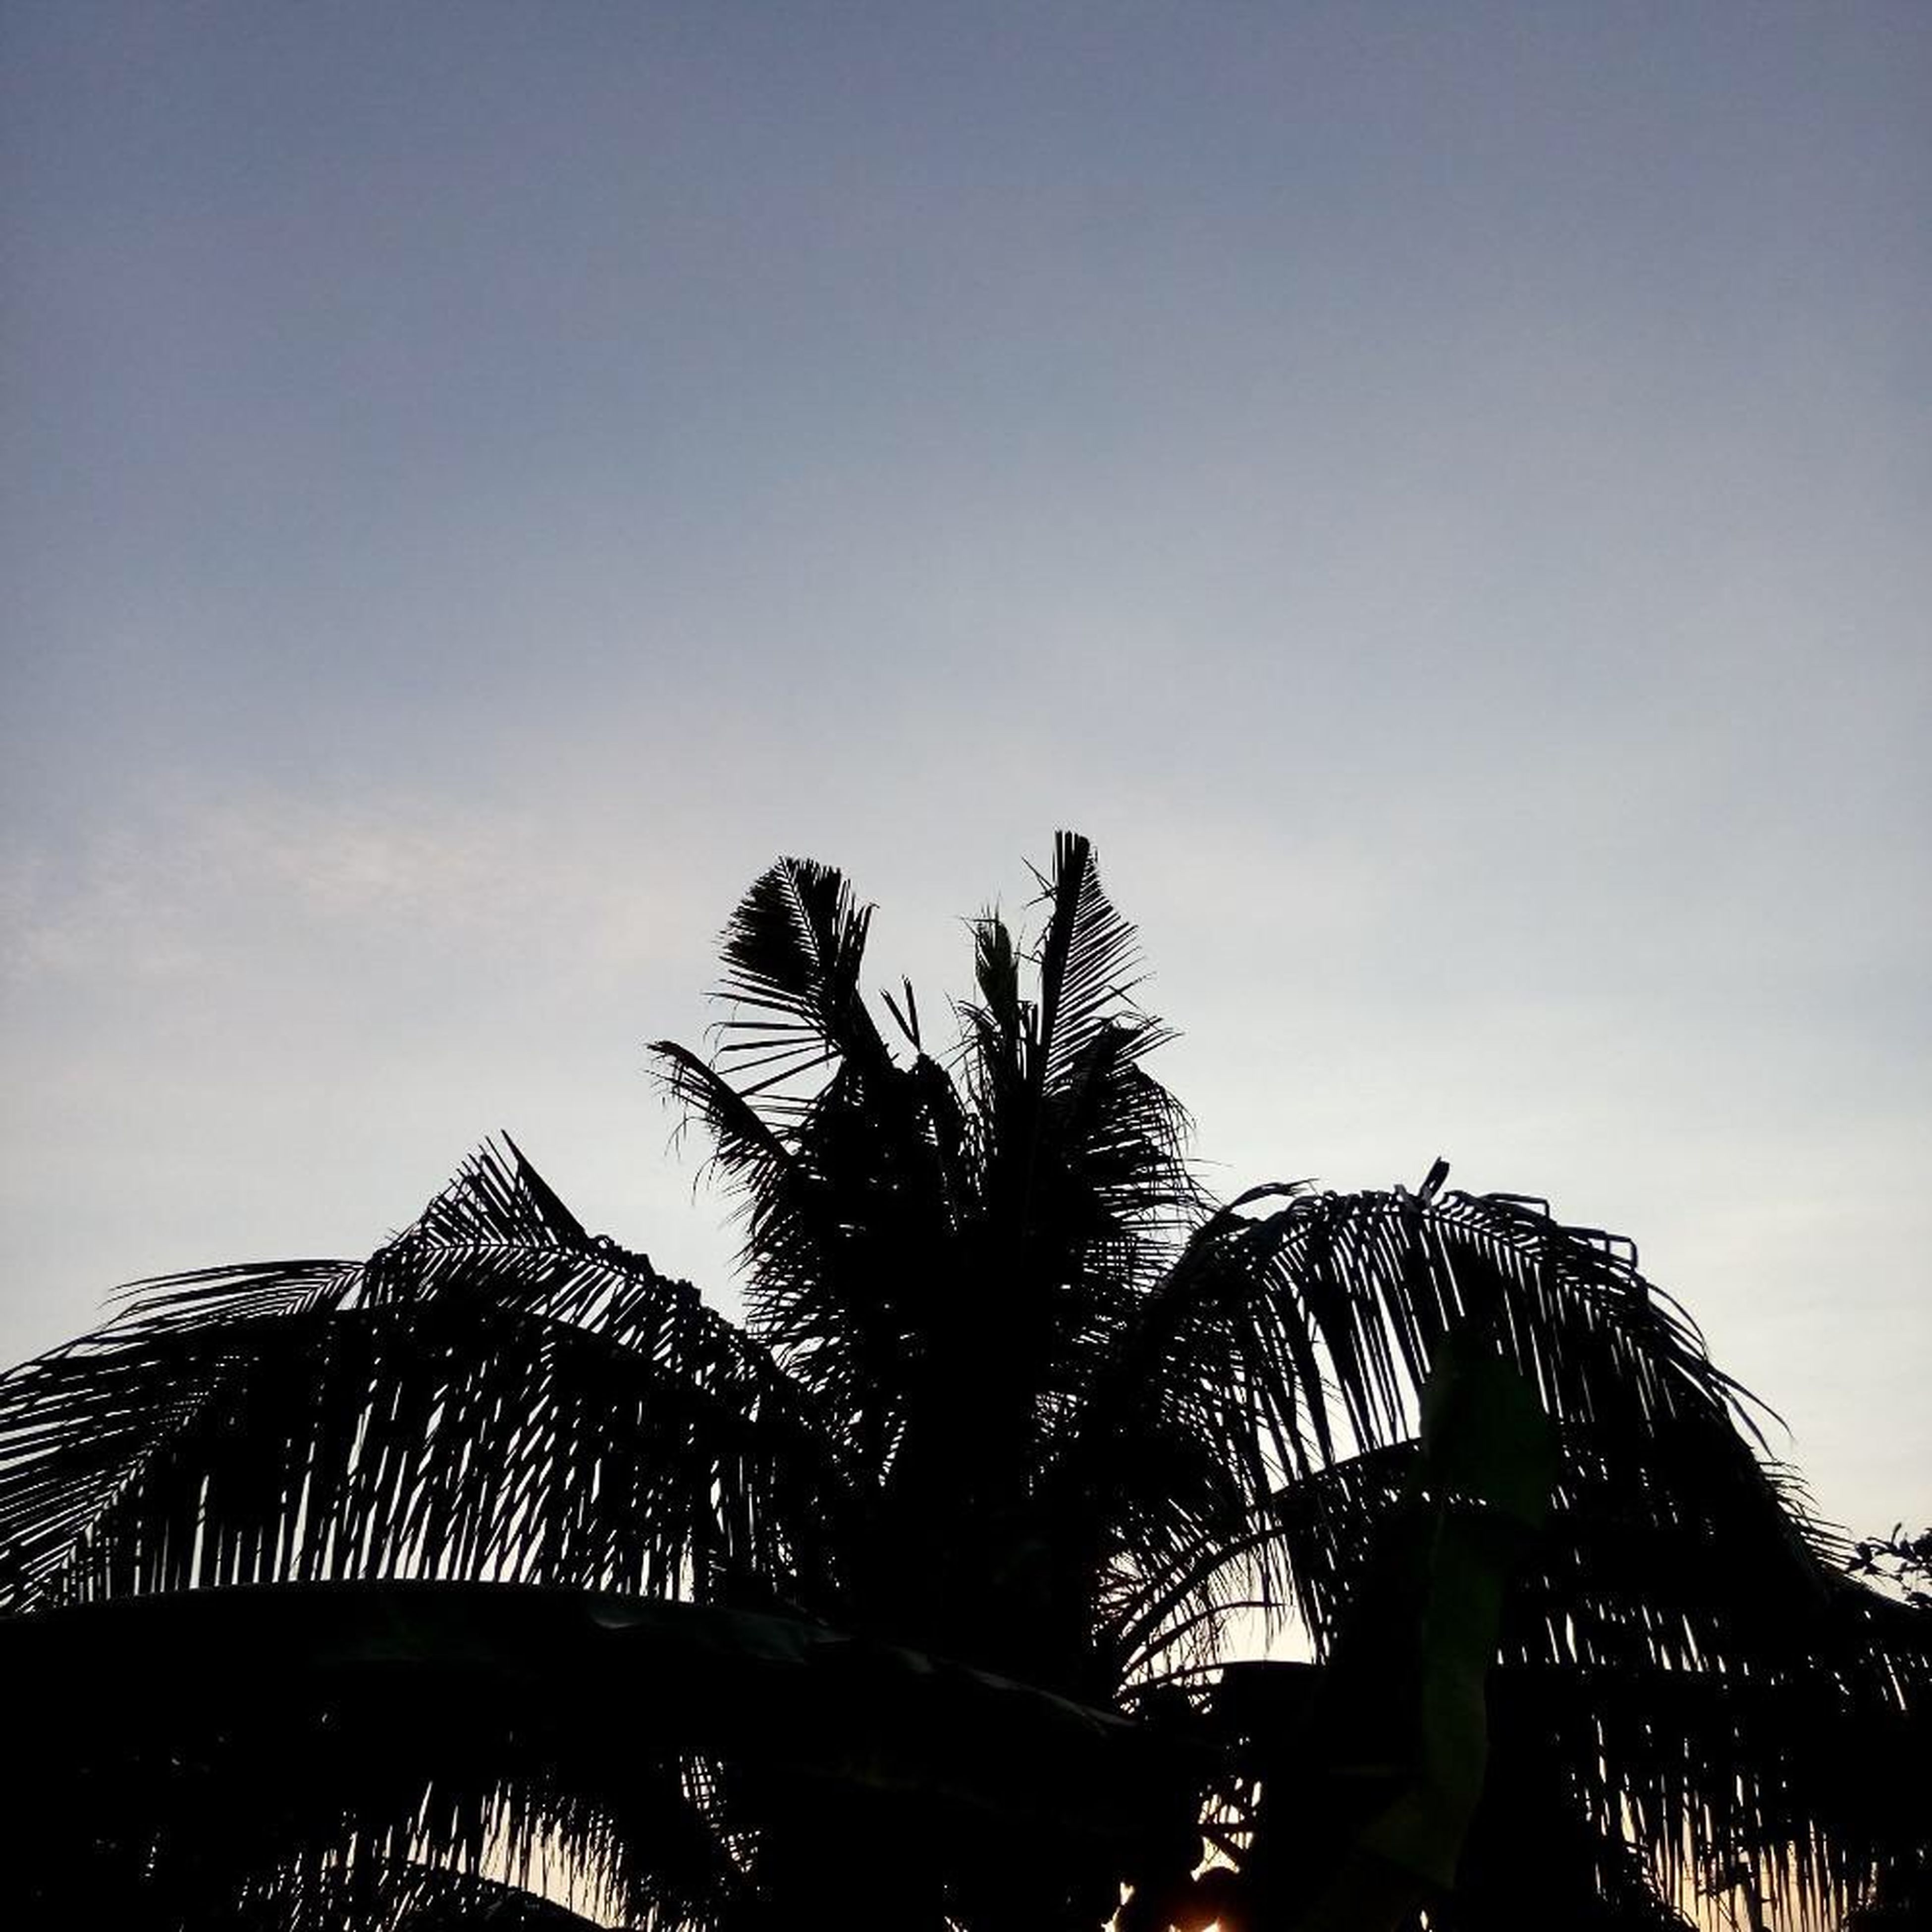 low angle view, tree, palm tree, clear sky, silhouette, sky, copy space, growth, nature, tranquility, branch, built structure, beauty in nature, outdoors, blue, architecture, no people, scenics, high section, dusk